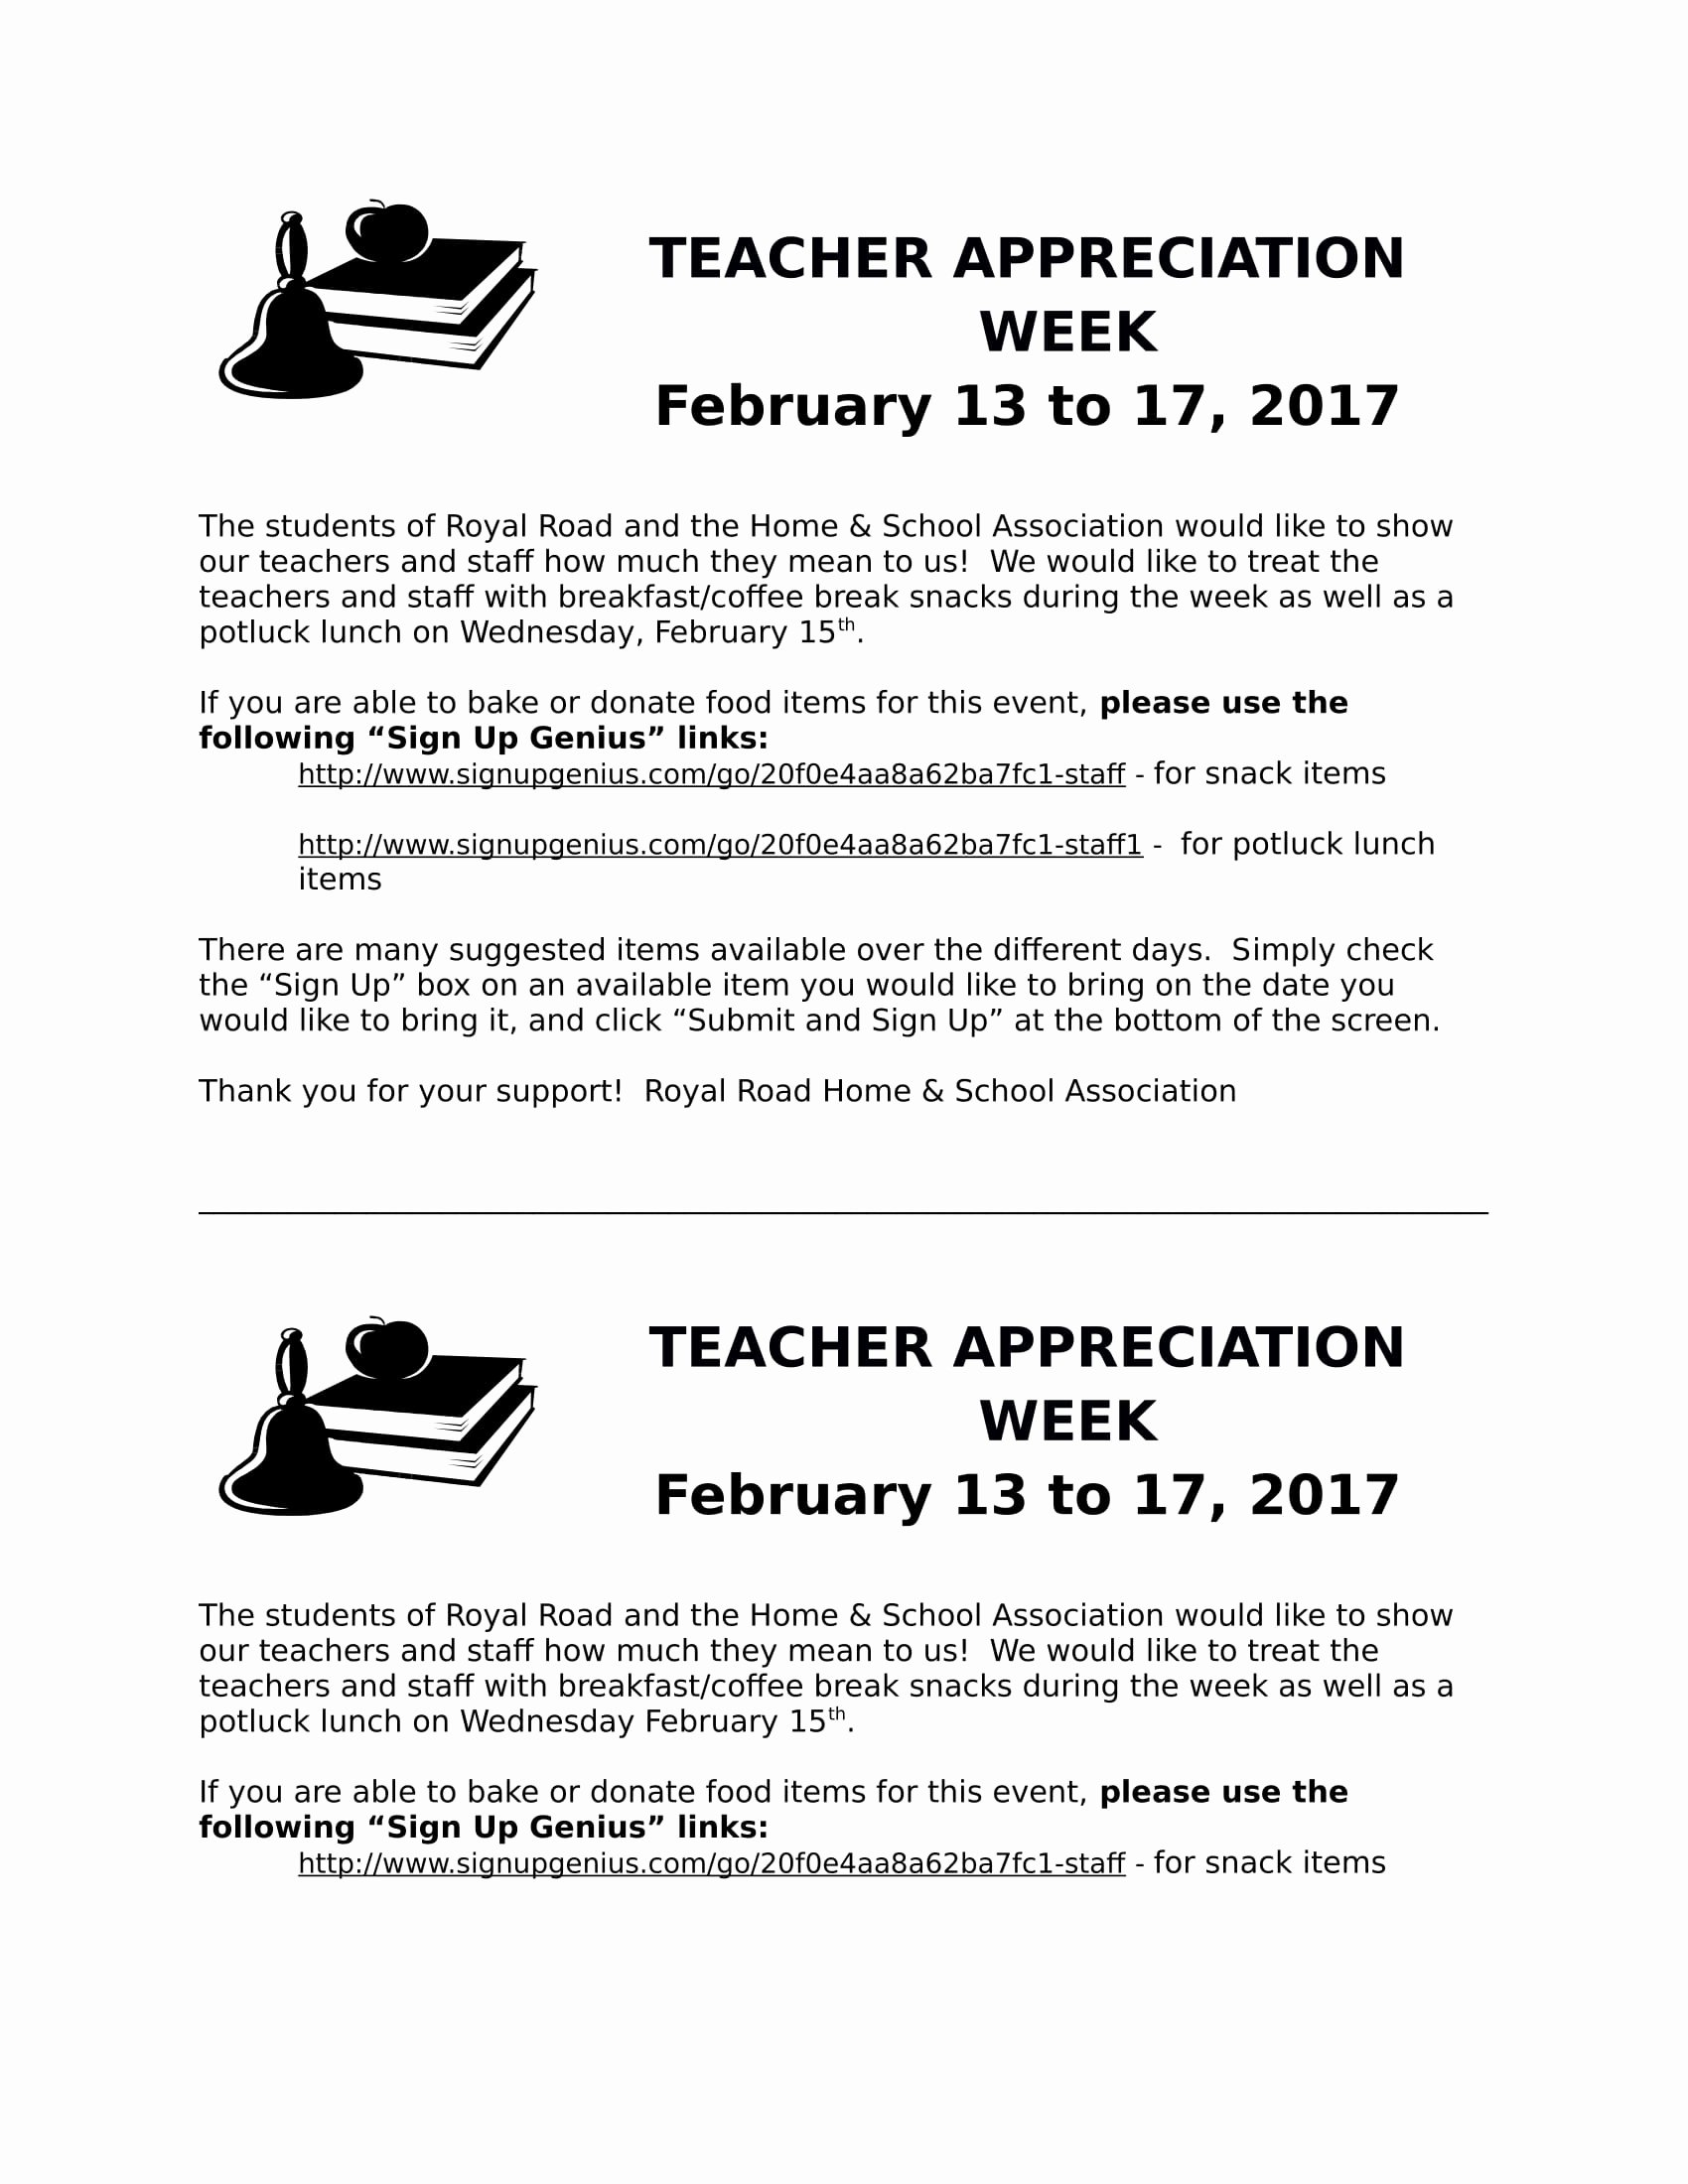 Teacher Appreciation Week Letters Beautiful 11 Teacher Appreciation Letter Templates Pdf Doc